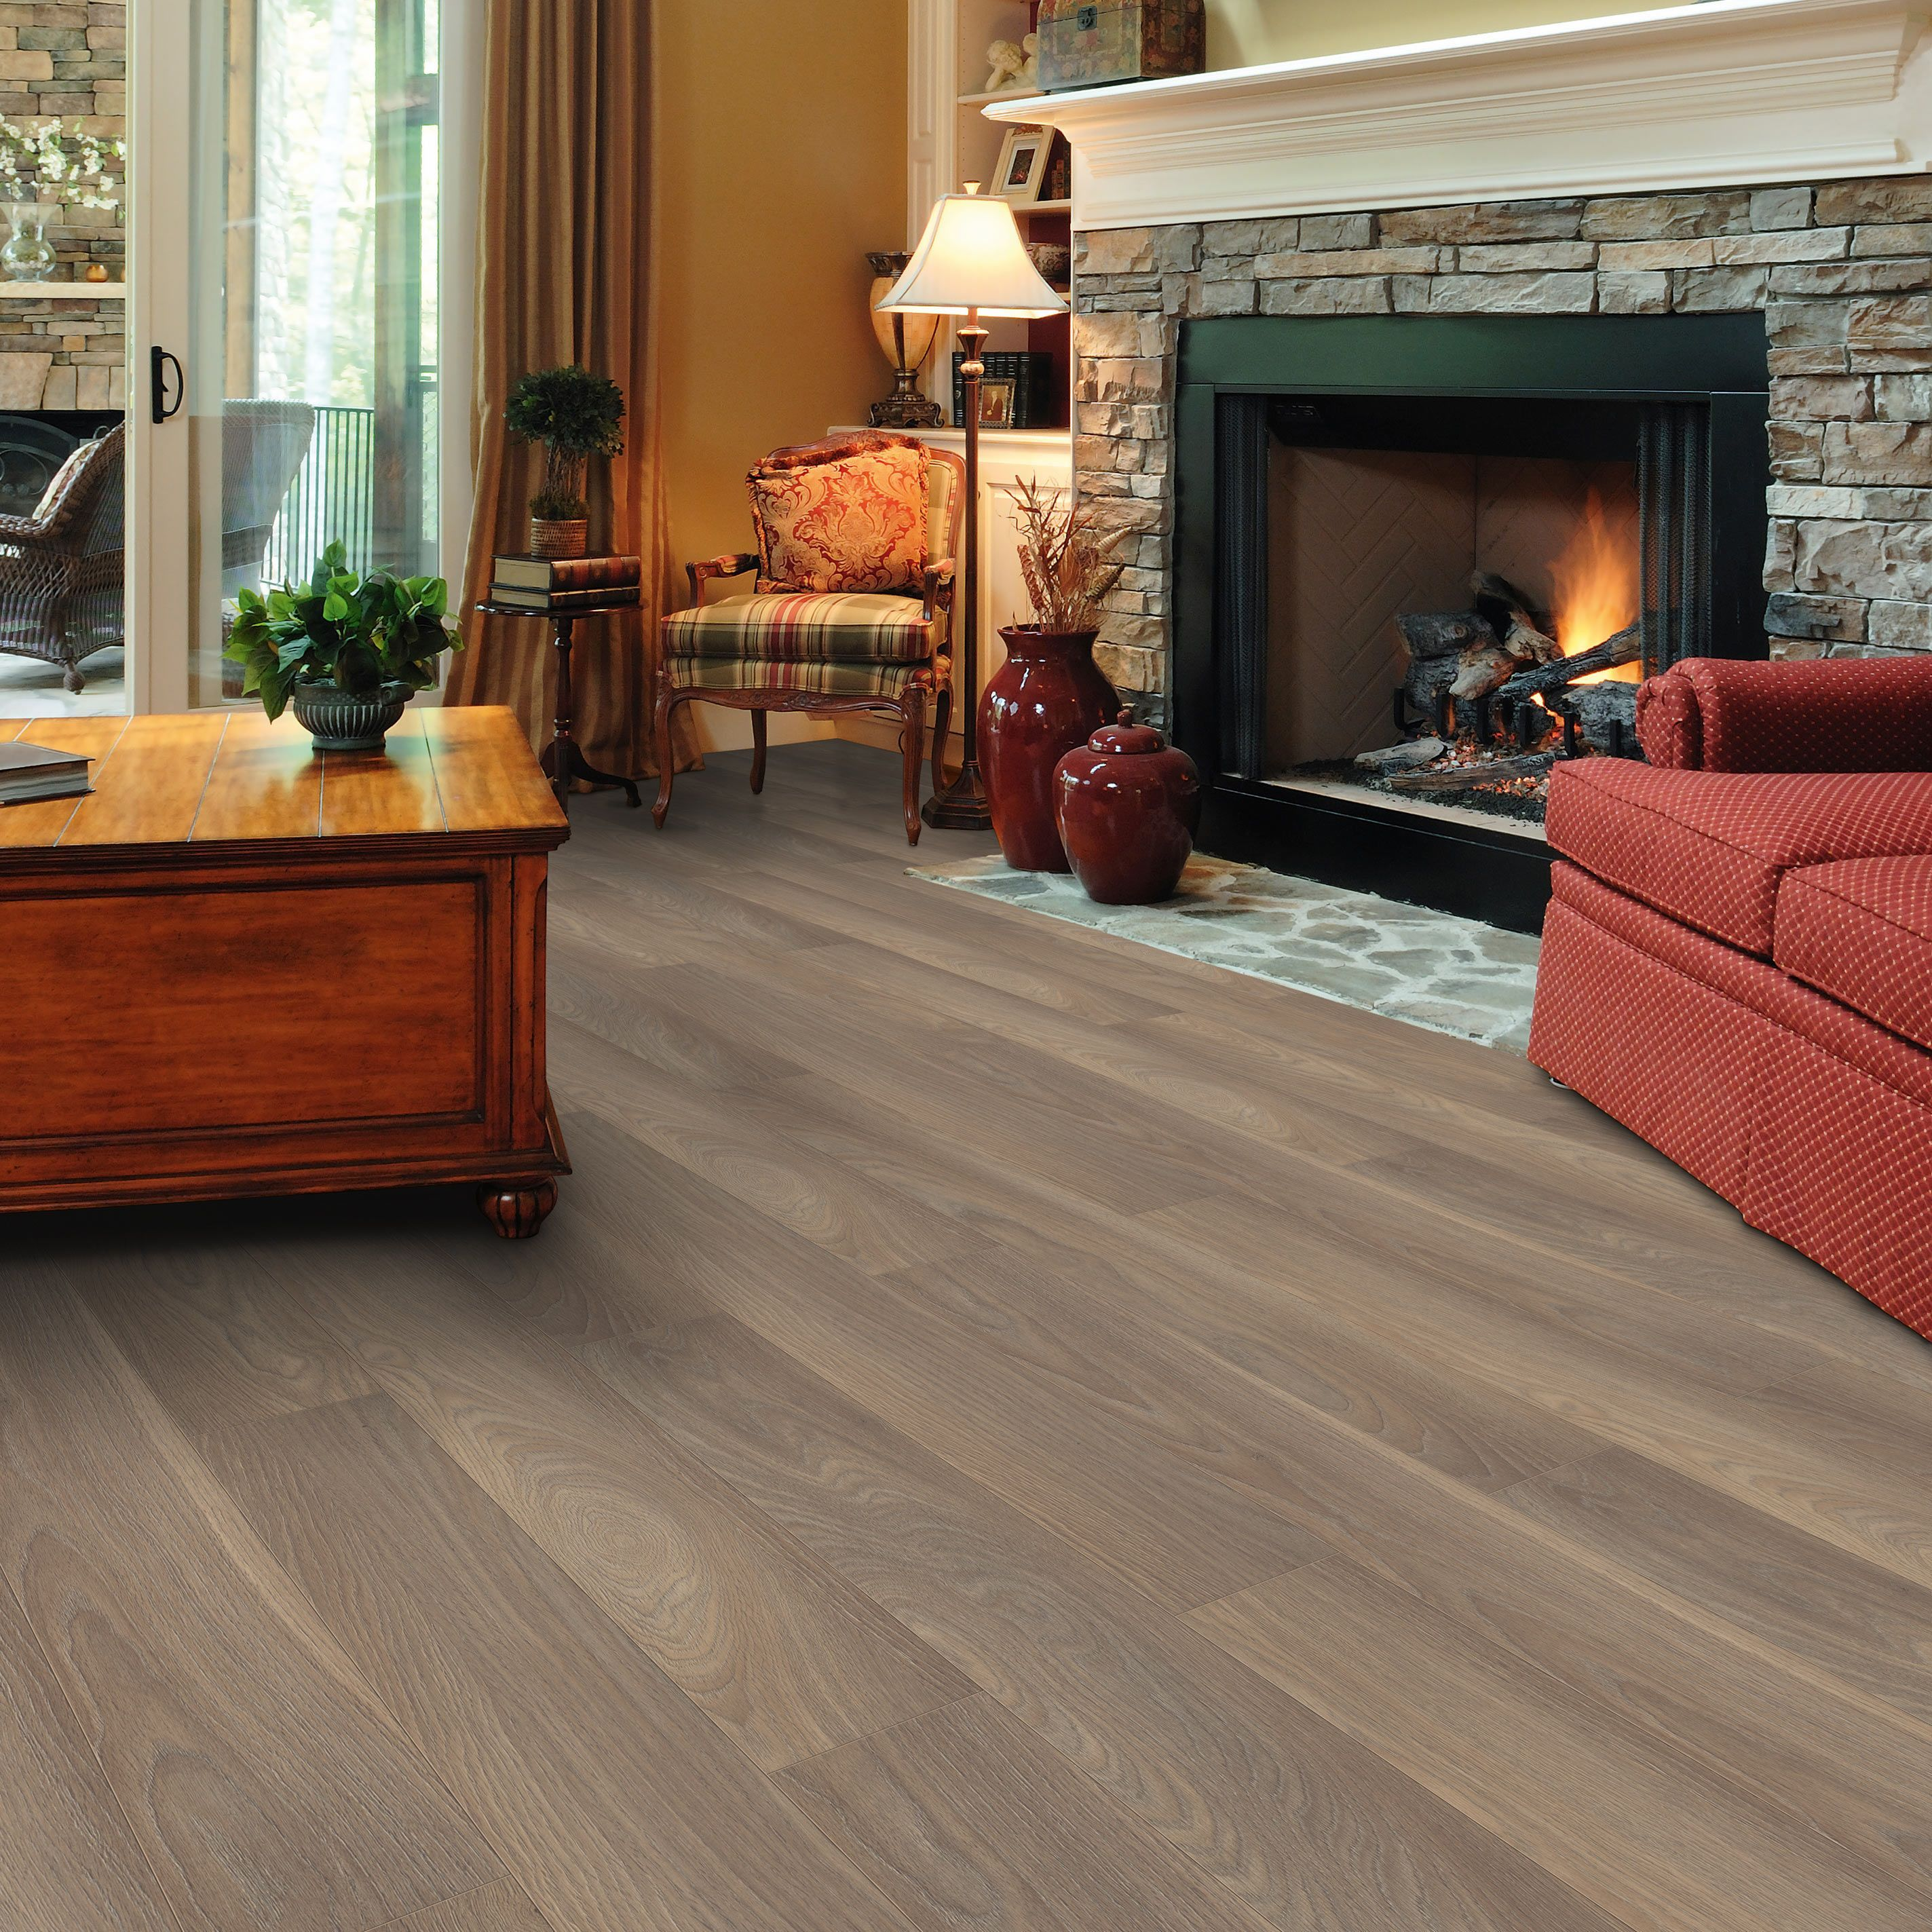 Belcanto Napoli Oak Effect Laminate Flooring 2 M 178 Pack